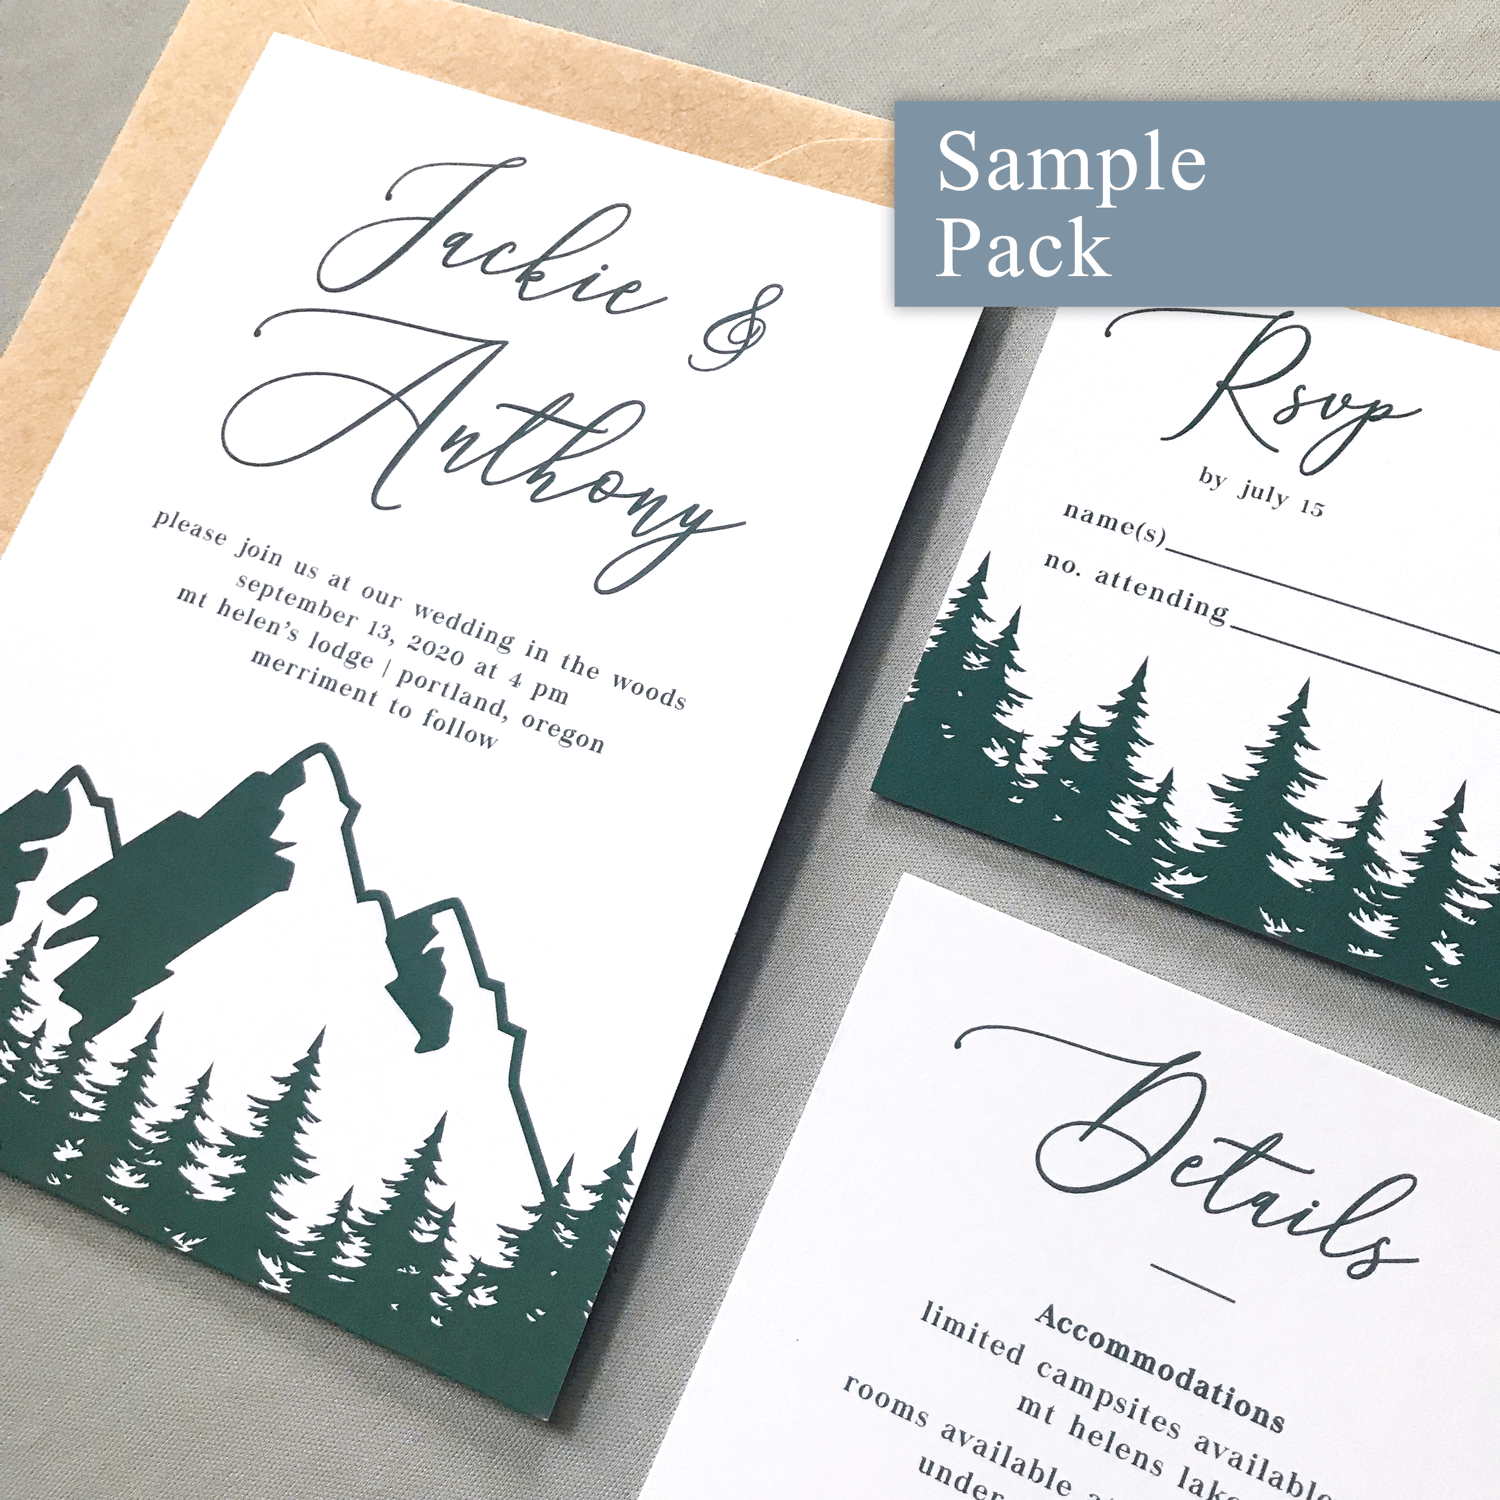 Wedding Invitation Sample Pack - The Aurora Suite - Mountains in the Woods Wedding Theme Green and Kraft